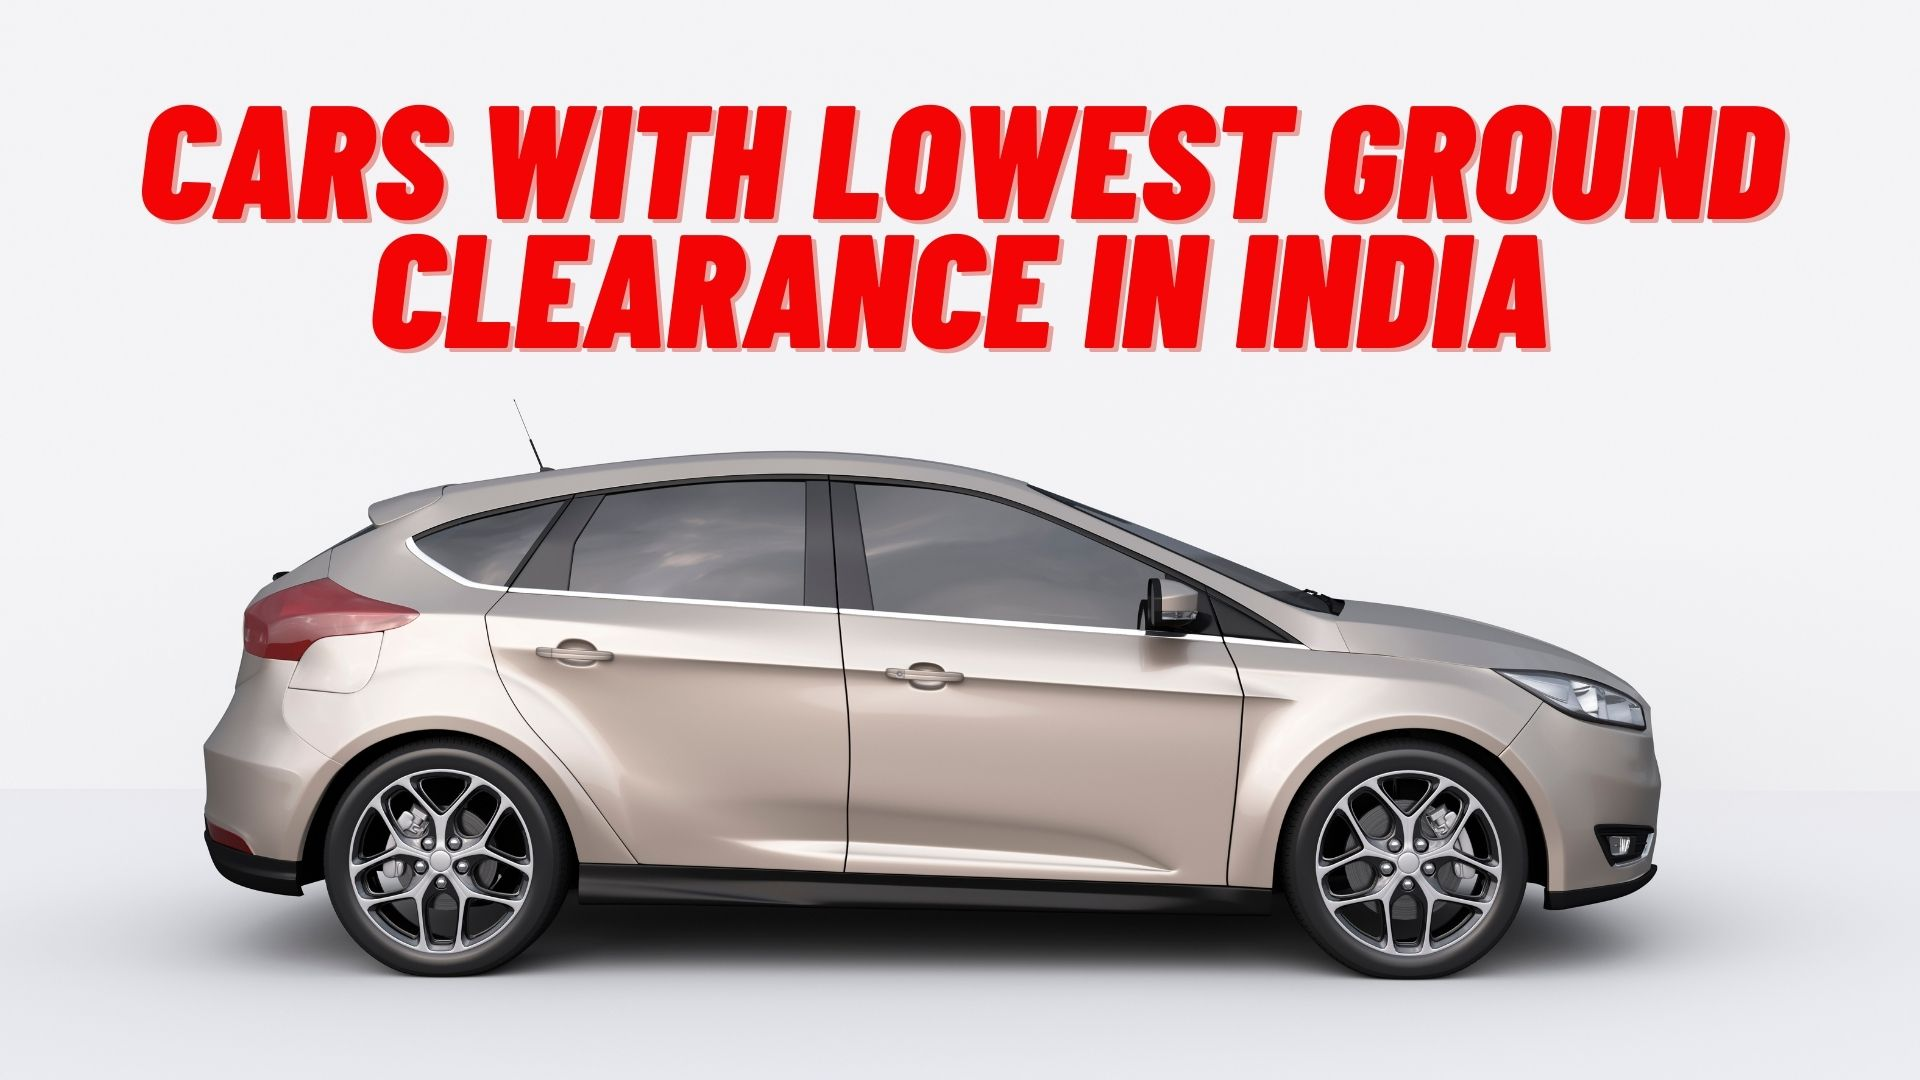 CARS WITH LOWEST GROUND CLEARANCE IN INDIA